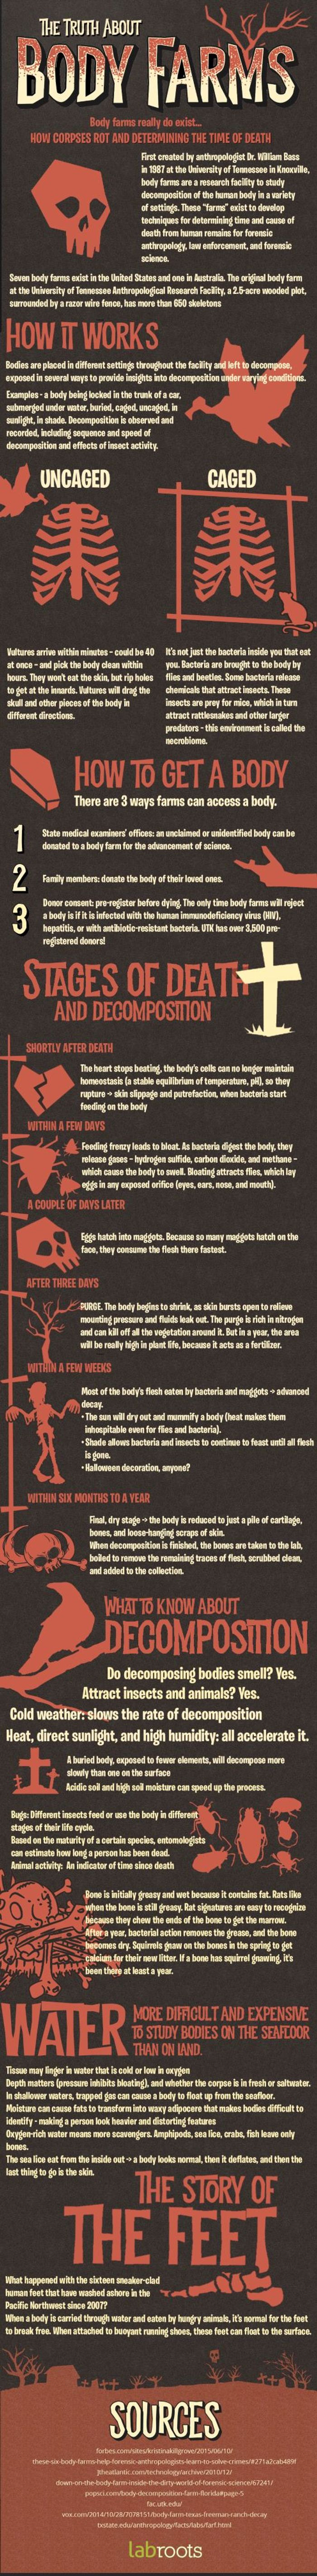 body-farms-infographic